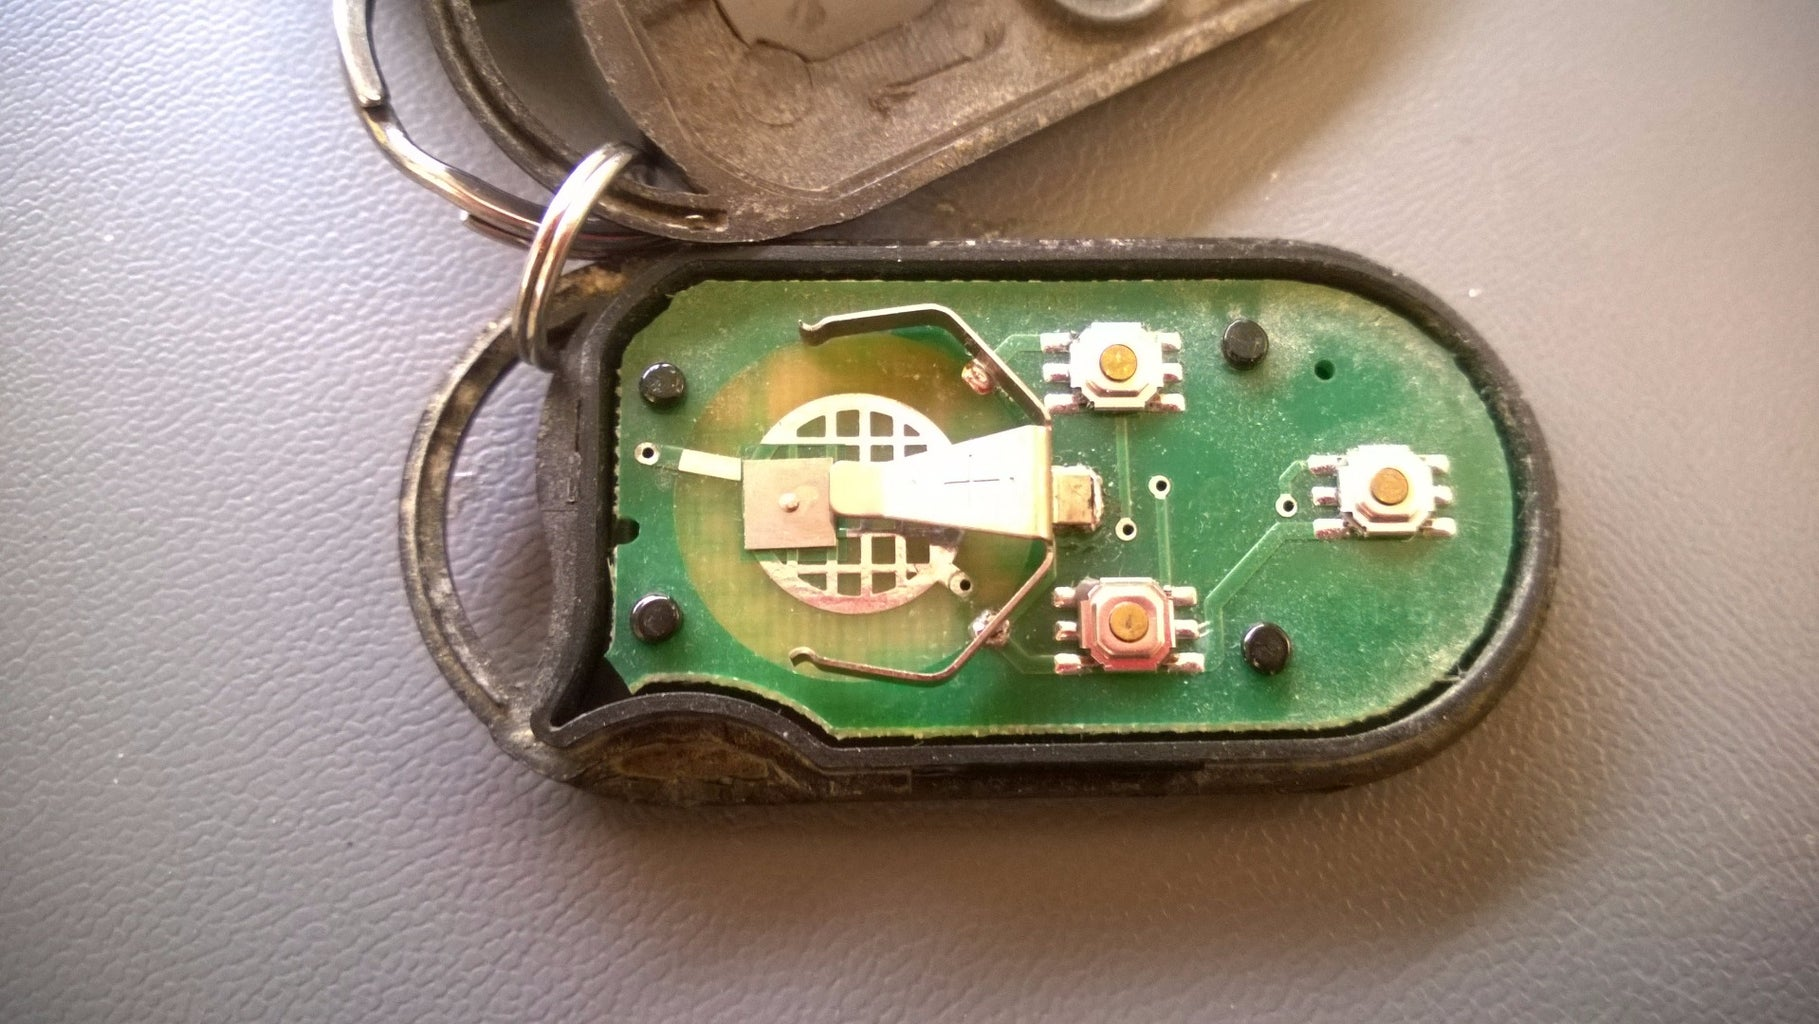 Reattaching the Battery Case